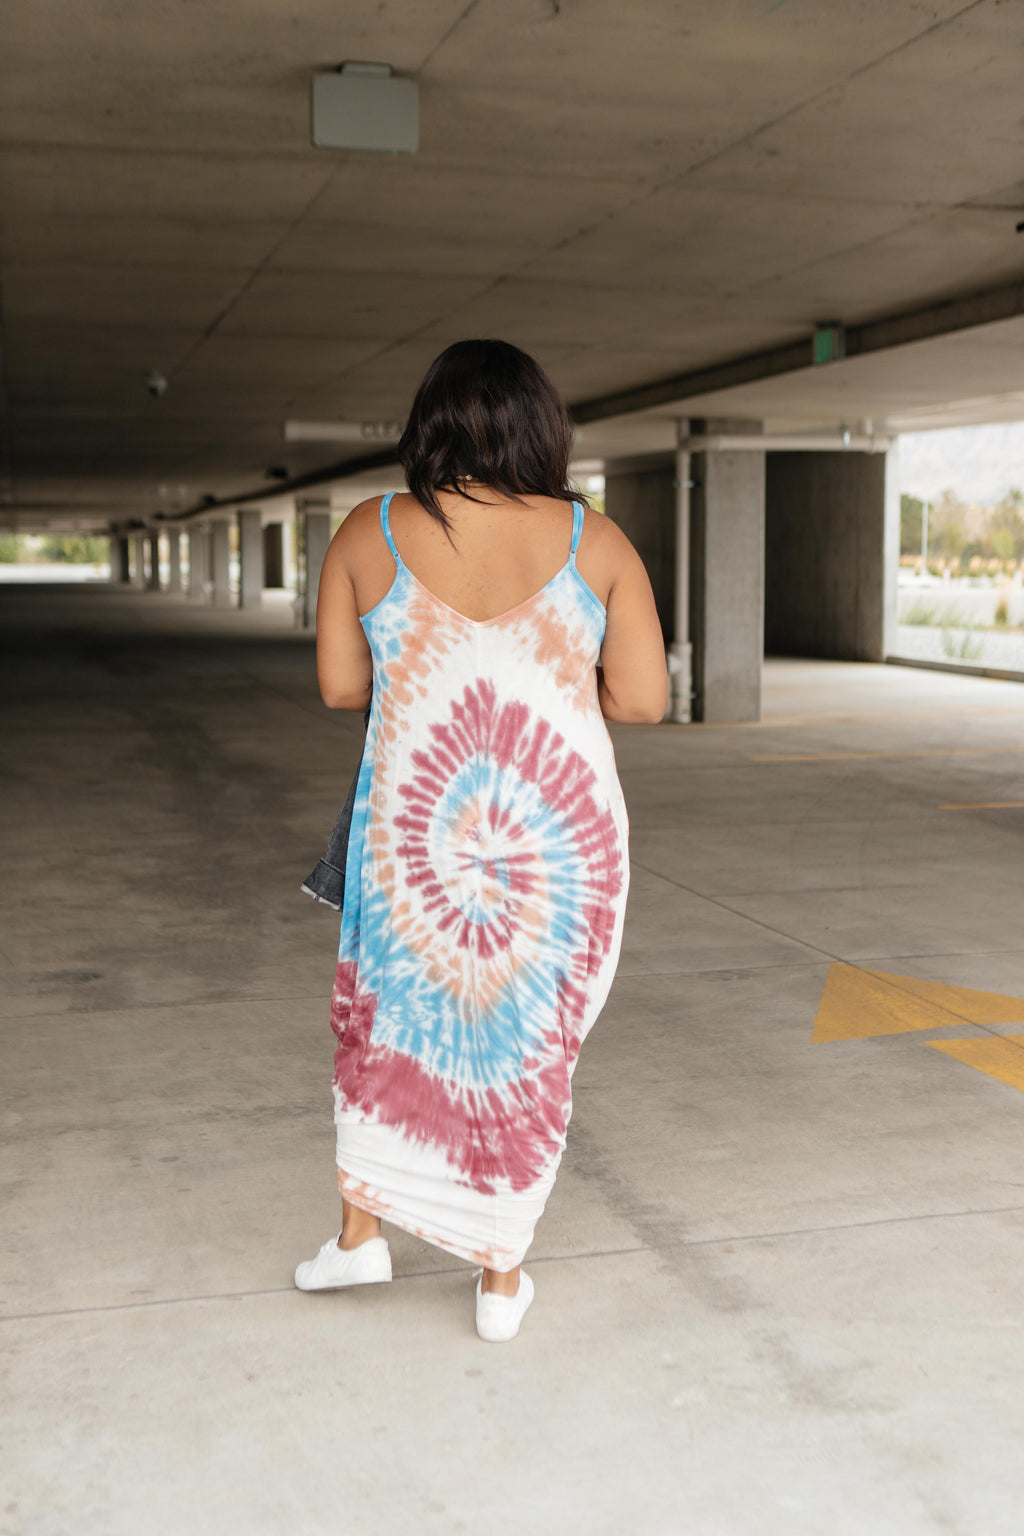 The Big Swirl Maxi Dress-10-7-2020, 1XL, 2XL, 3XL, BFCM2020, Dresses, Group A, Group B, Group C, Group D, Group S, Group T, Large, Medium, Plus, Small, XL, XS-Womens Artisan USA American Made Clothing Accessories